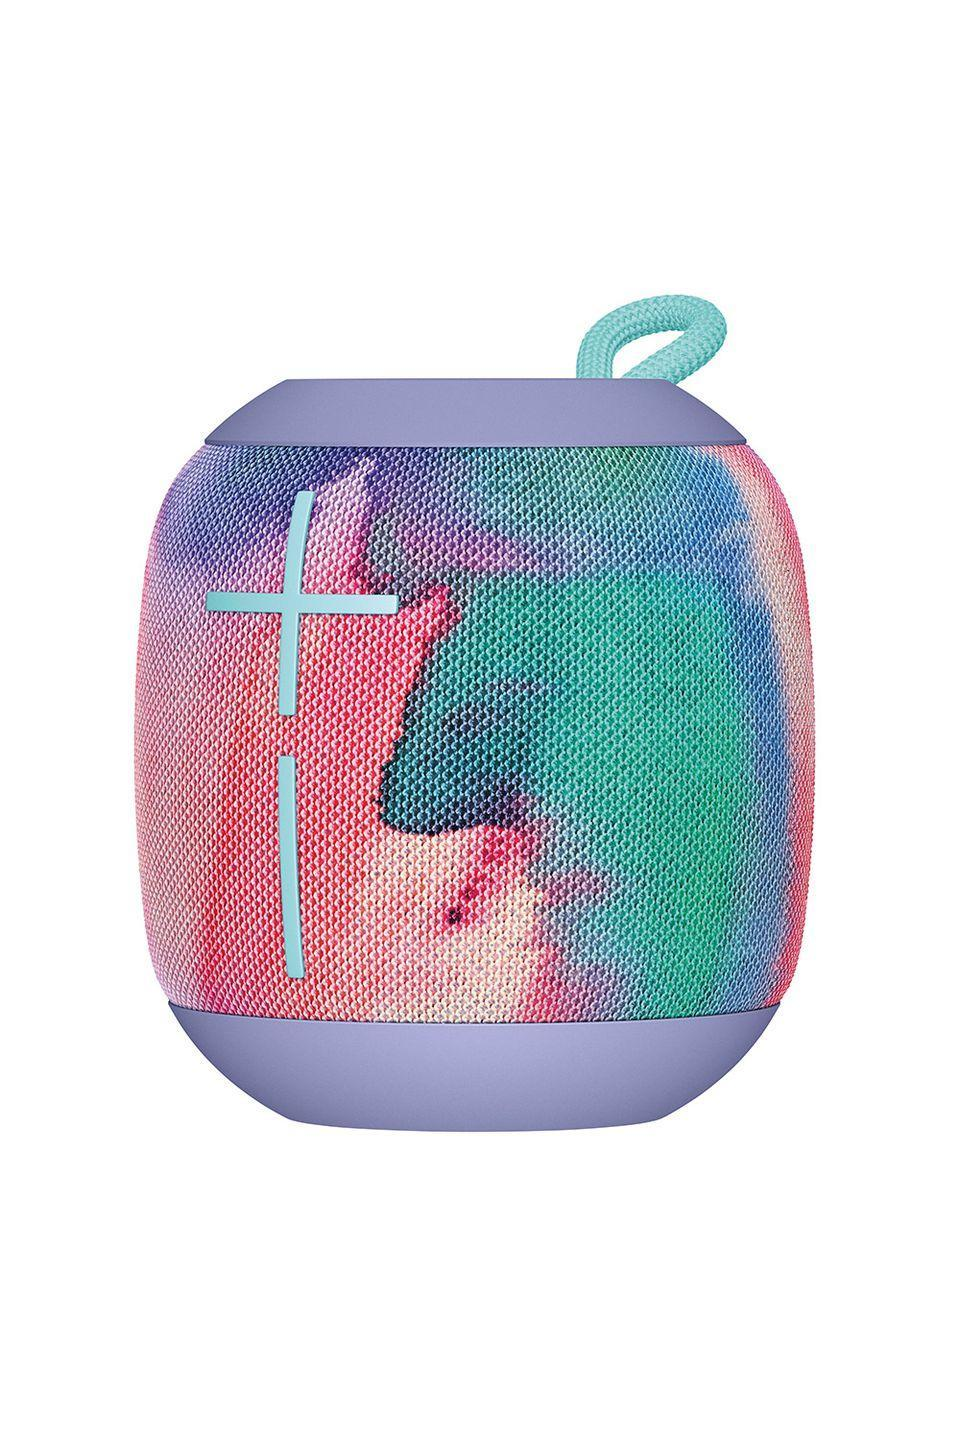 """<p>It's also perfect for blasting tunes at your end-of-summer pool dip. </p><p>Ultimate Ears Wonderboom Bluetooth Speaker, $100, <a href=""""https://www.amazon.com/"""" rel=""""nofollow noopener"""" target=""""_blank"""" data-ylk=""""slk:amazon.com"""" class=""""link rapid-noclick-resp"""">amazon.com</a></p>"""